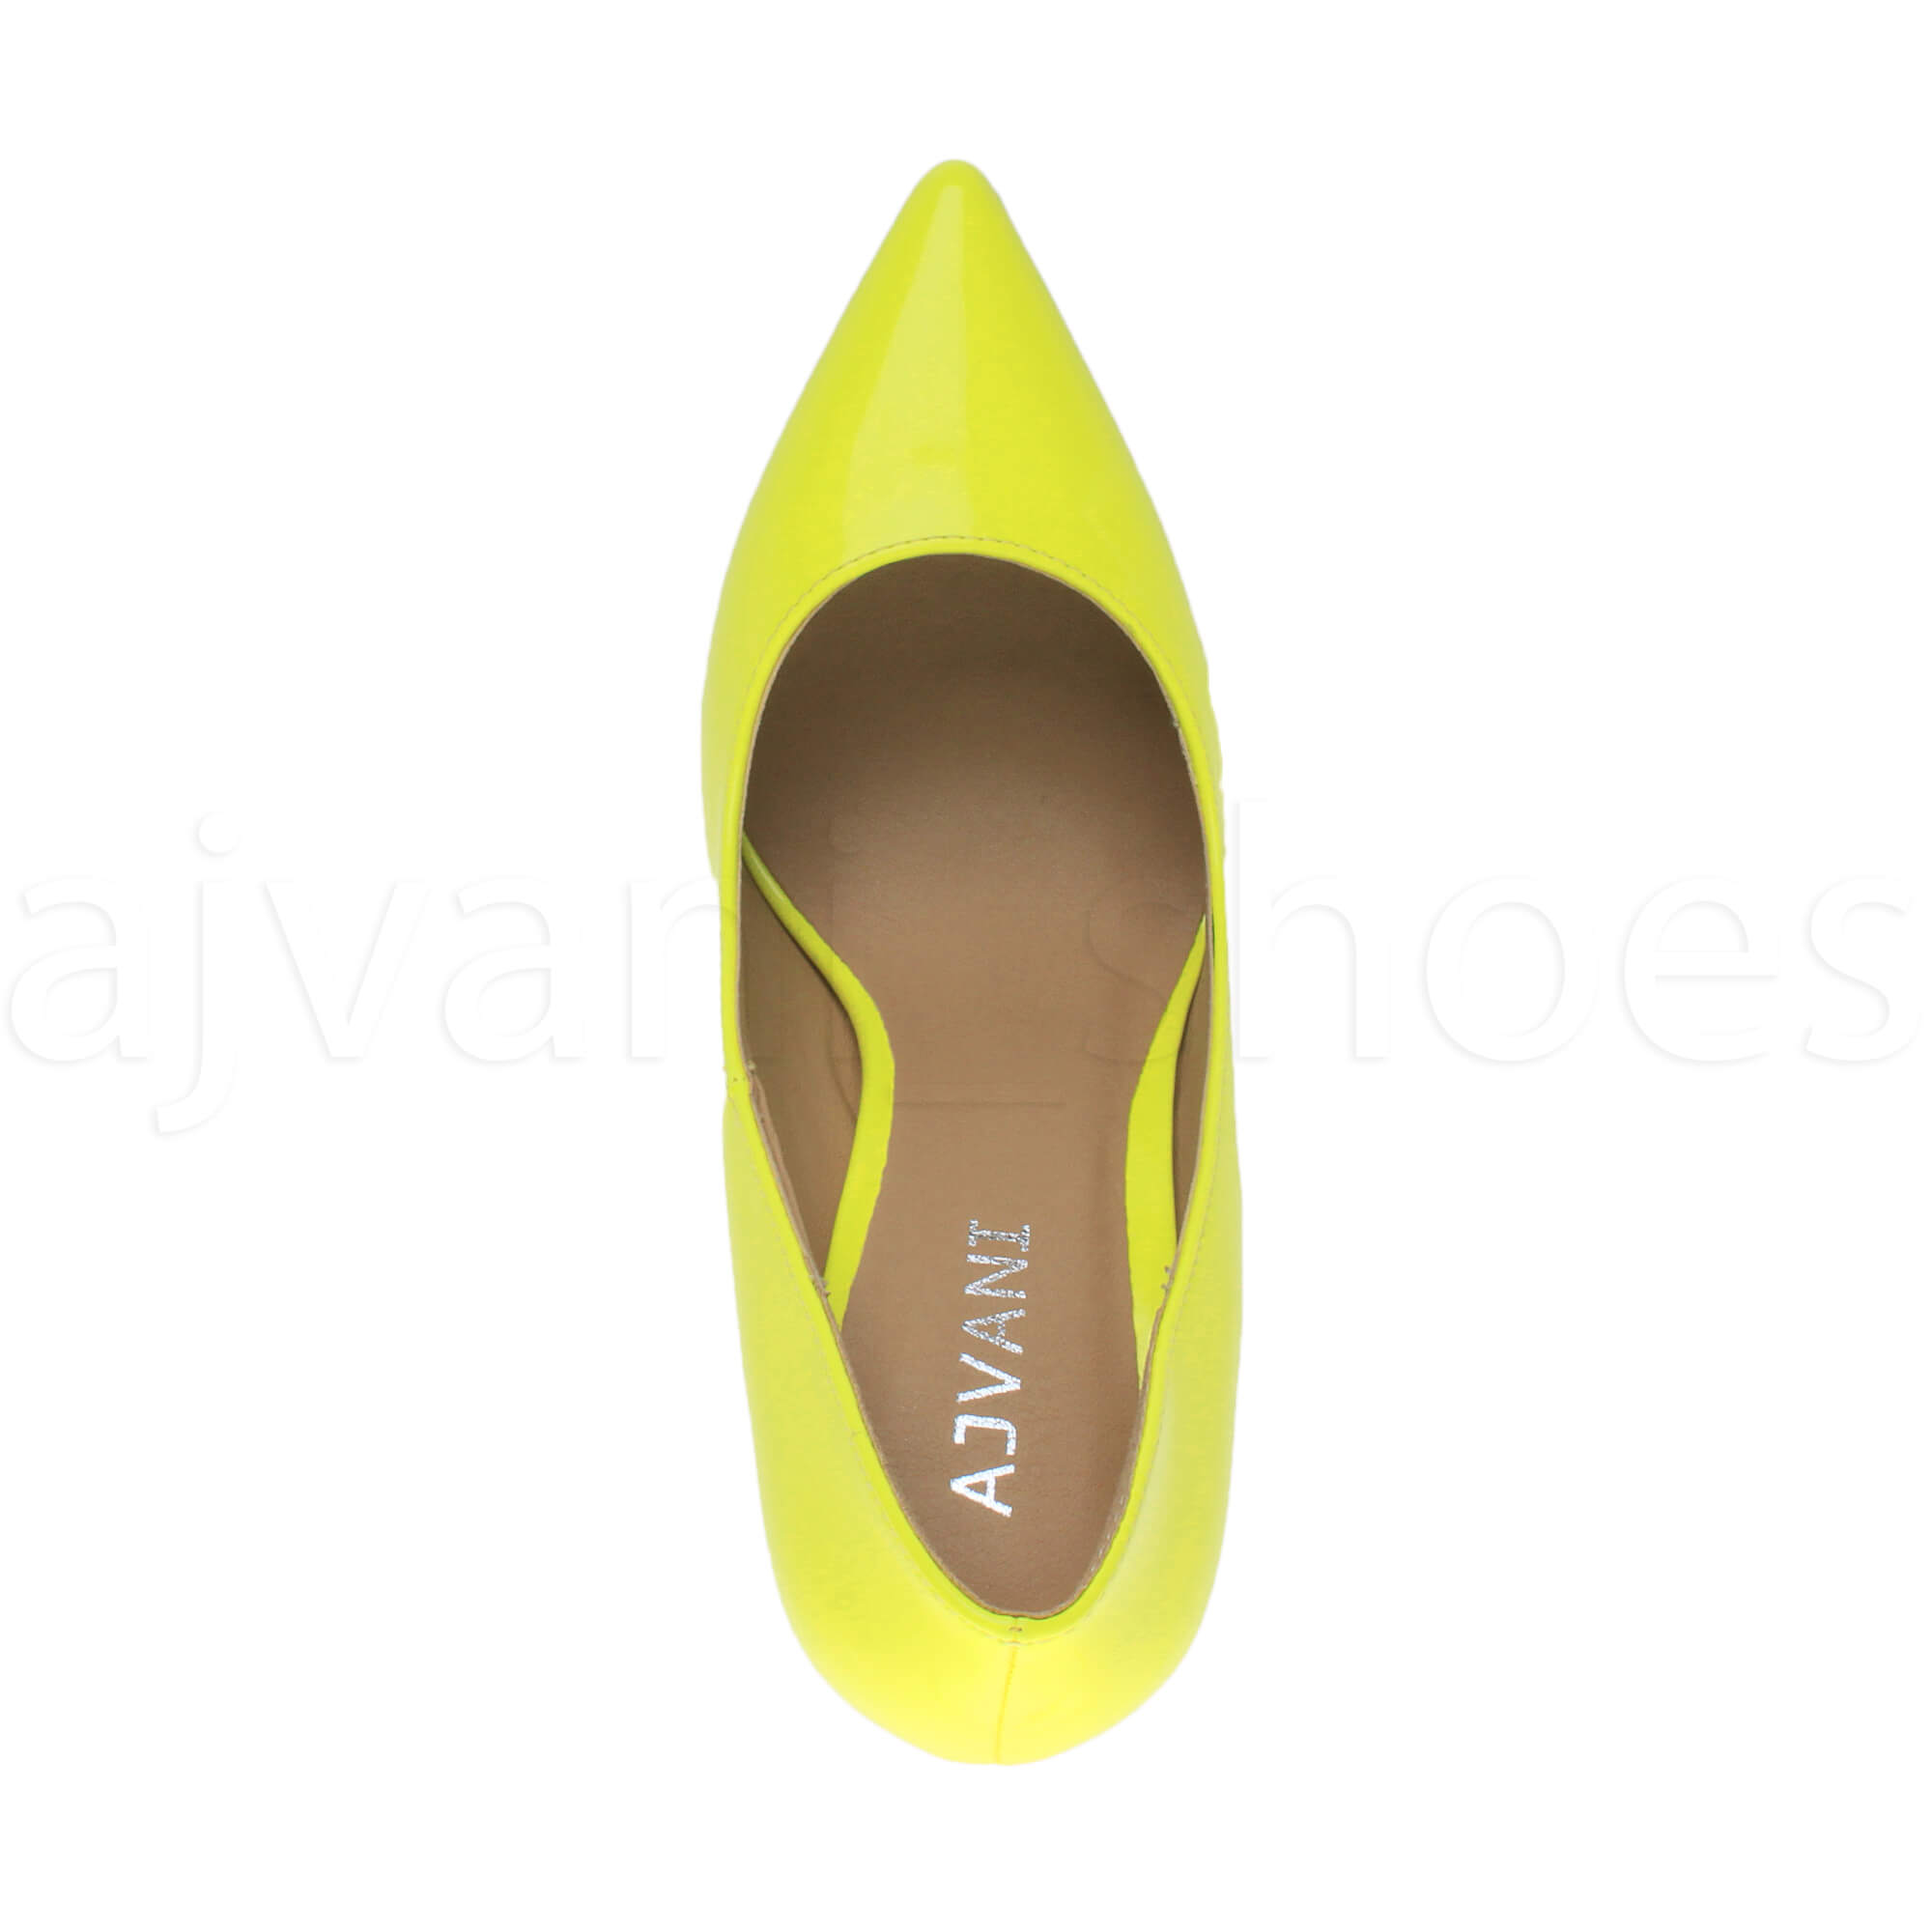 WOMENS-LADIES-HIGH-HEEL-POINTED-CONTRAST-COURT-SMART-PARTY-WORK-SHOES-PUMPS-SIZE thumbnail 118